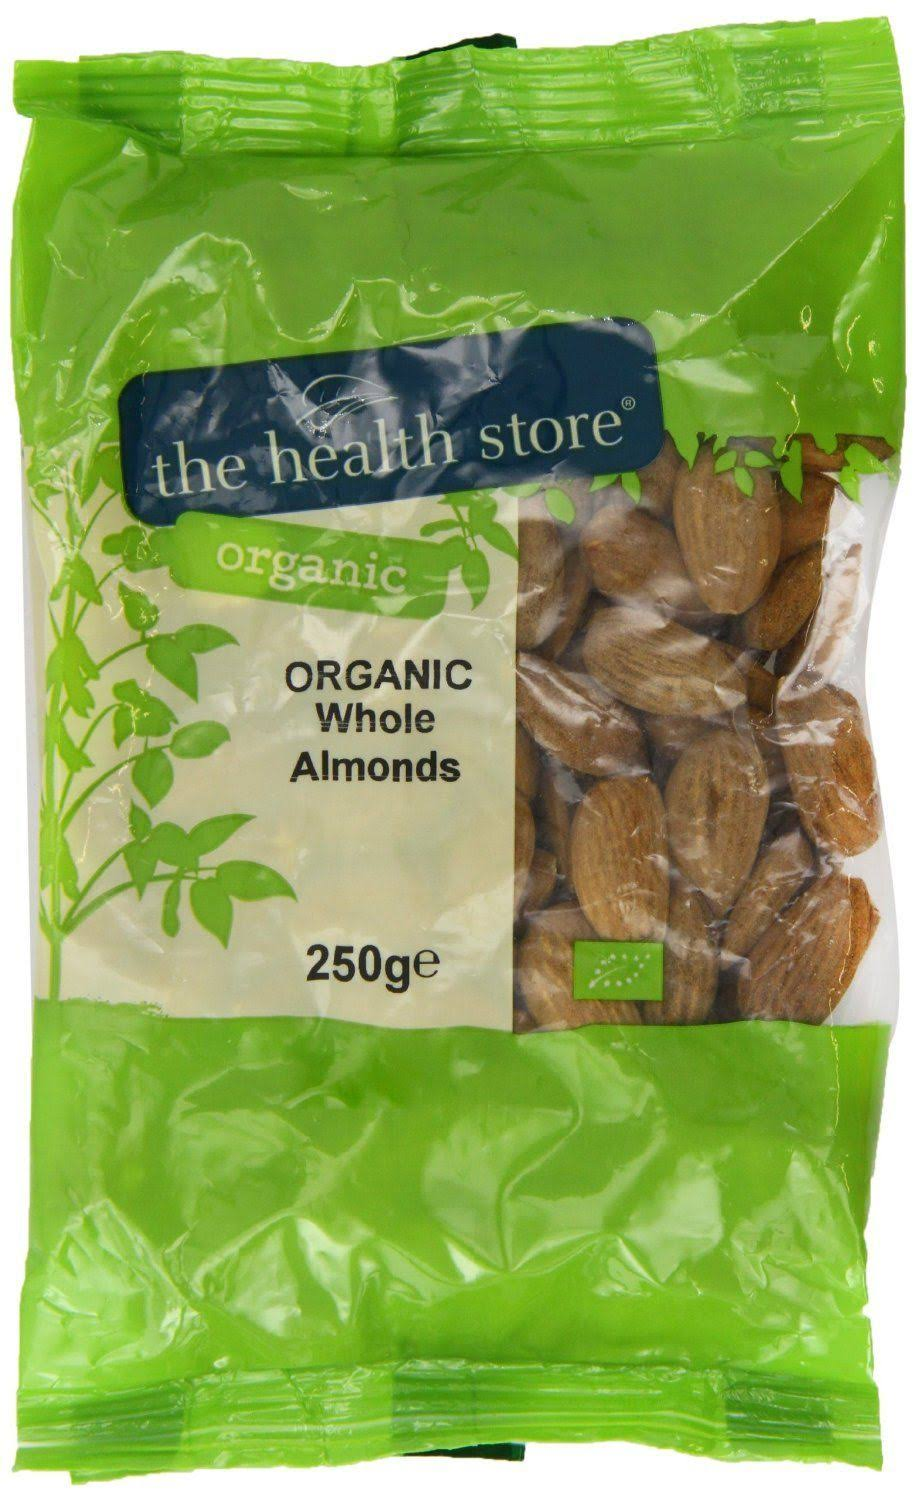 The Health Store Organic Whole Almonds - 250g